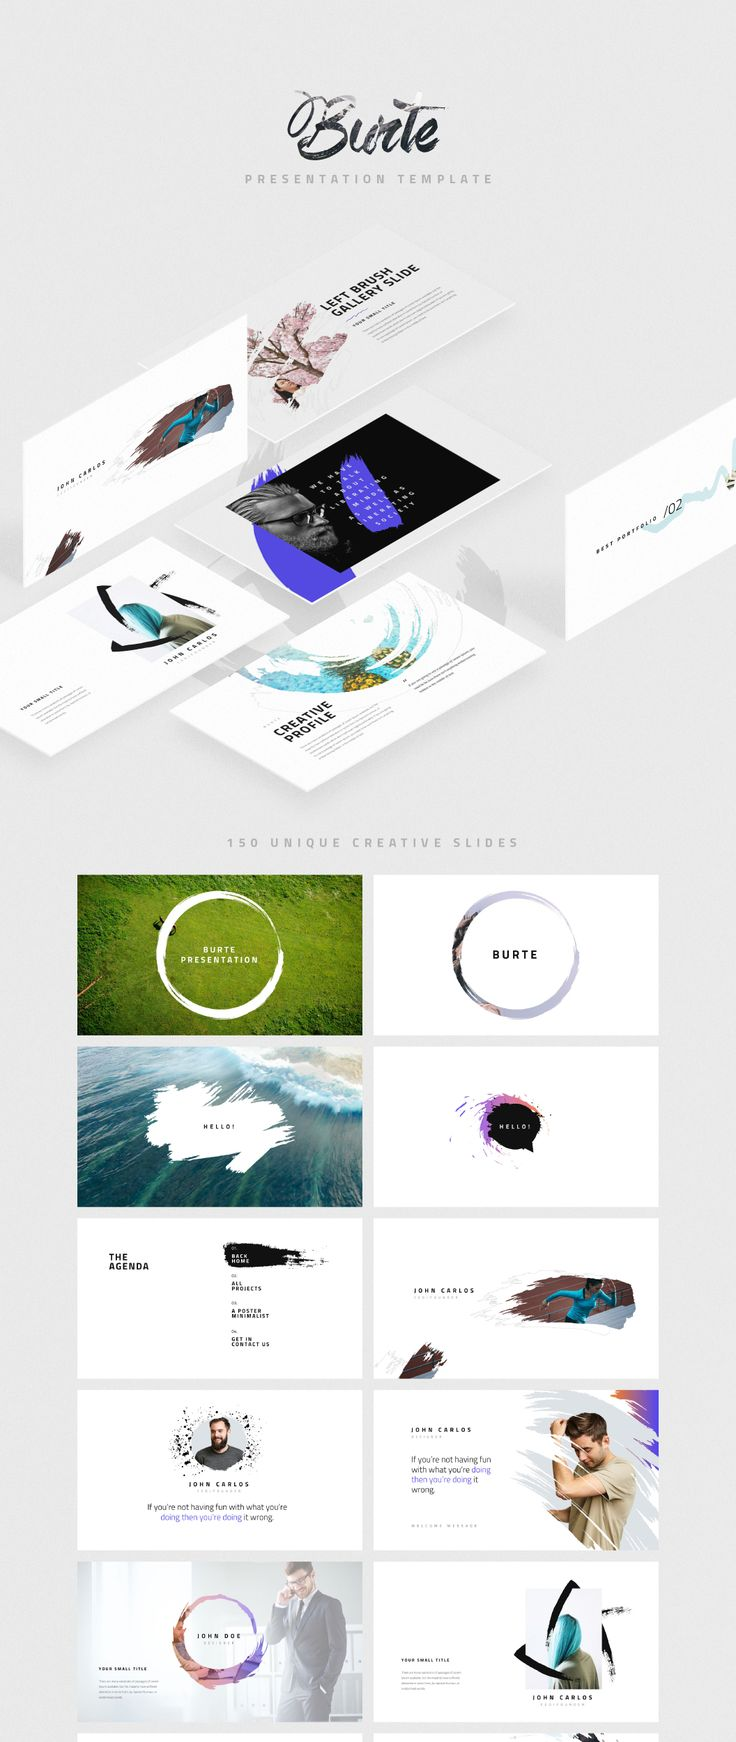 A powerful & creative slide presentation available for PowerPoint and Keynote. It comes with 150+ unique presentation slides with great professional layout and creative design. Burte makes it easy to change colors, modify shapes, texts, & charts, all shapes are editable. Includes a fabulous set of 800 vector icons and Apple device mockups.